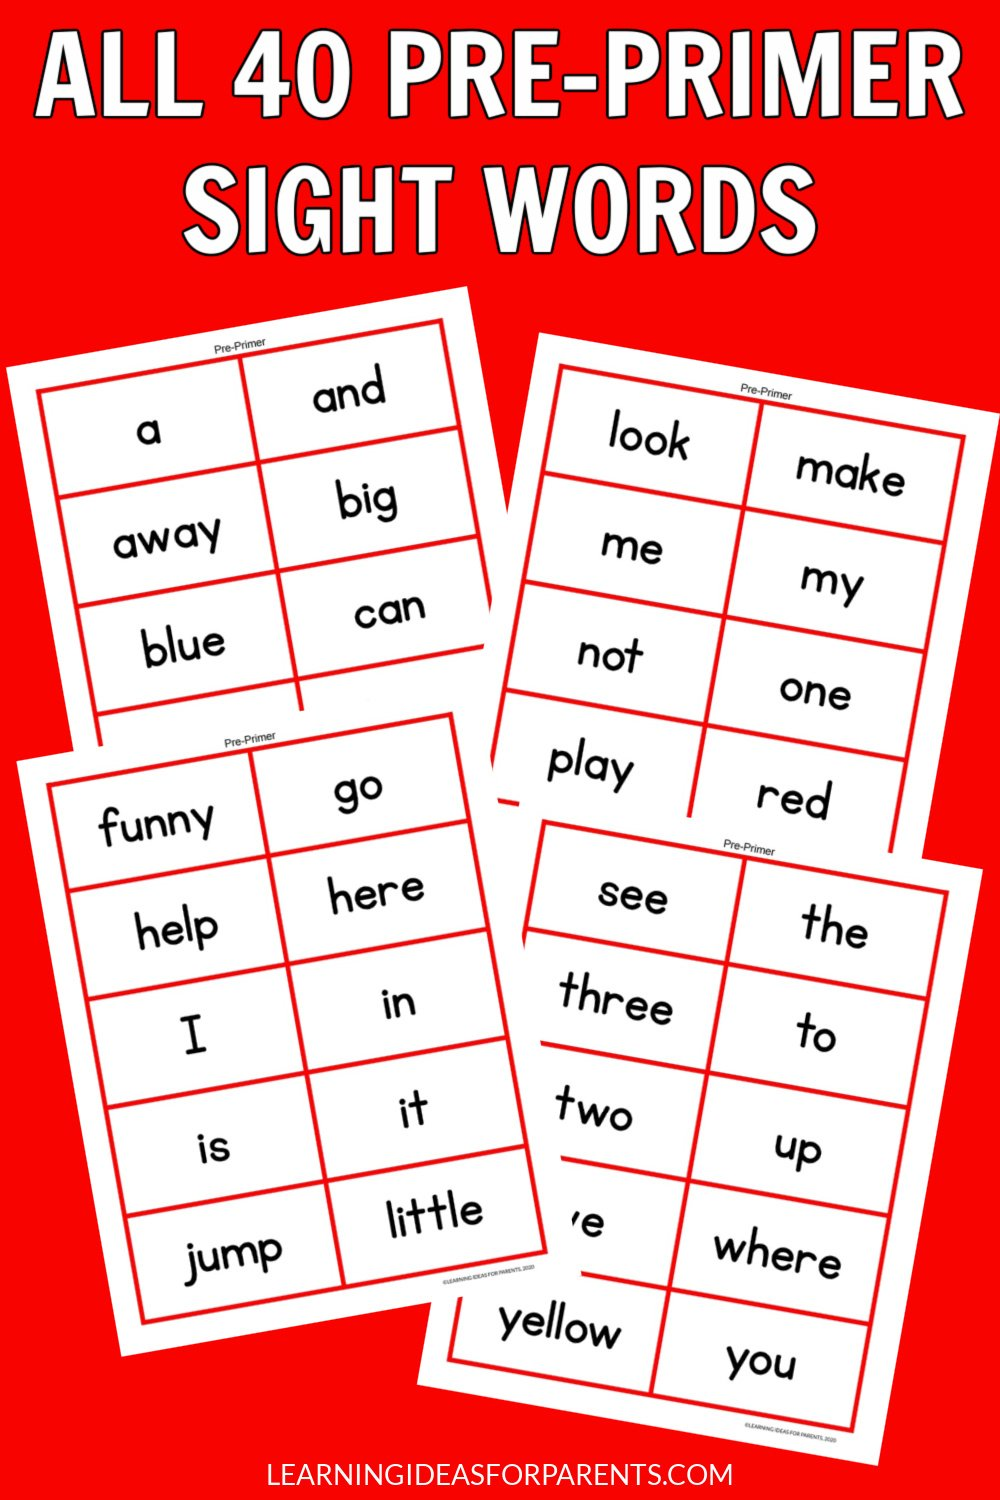 Free printable sight words flash cards for all 40 Dolch pre-primer words.